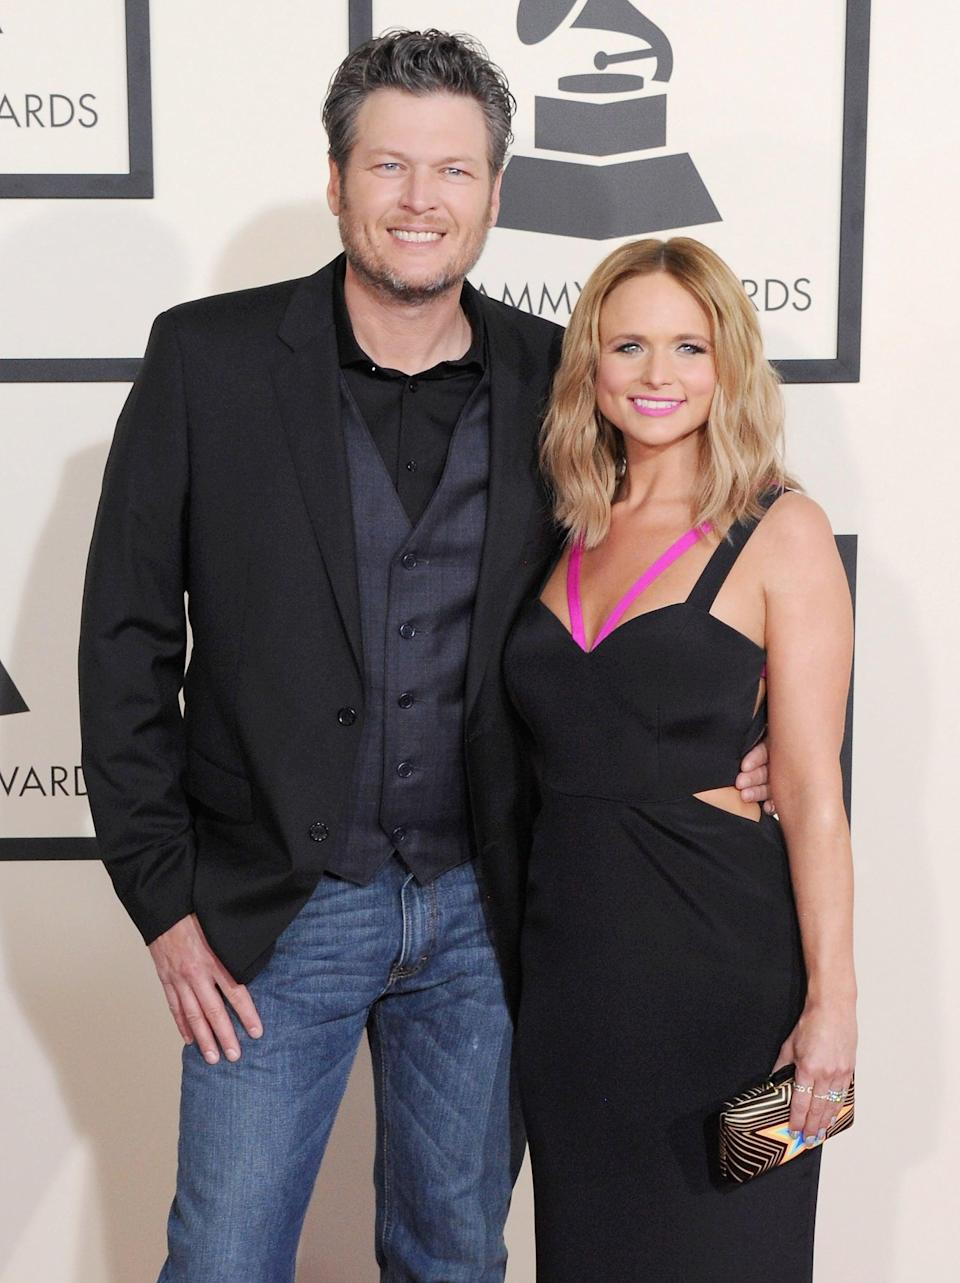 "<p>Lambert and Shelton, who had been married since 2010 and together since 2006, announced their divorce in July 2015. <strong>Us Weekly</strong> reported that <a href=""http://www.usmagazine.com/celebrity-news/news/blake-shelton-miranda-lambert-divorce-finalized-hours-after-split-report-2015207/"" class=""link rapid-noclick-resp"" rel=""nofollow noopener"" target=""_blank"" data-ylk=""slk:the couple's divorce was finalized"">the couple's divorce was finalized</a> almost immediately after the announcement. ""This is not the future we envisioned, and it is with heavy hearts that we move forward separately. We are real people, with real lives, with real families, friends, and colleagues. Therefore, we kindly ask for privacy and compassion concerning this very personal matter,"" the couple said in a joint statement. It was the second divorce for Shelton, whose marriage to Kaynette Williams ended in 2006.</p> <p><br></p>"